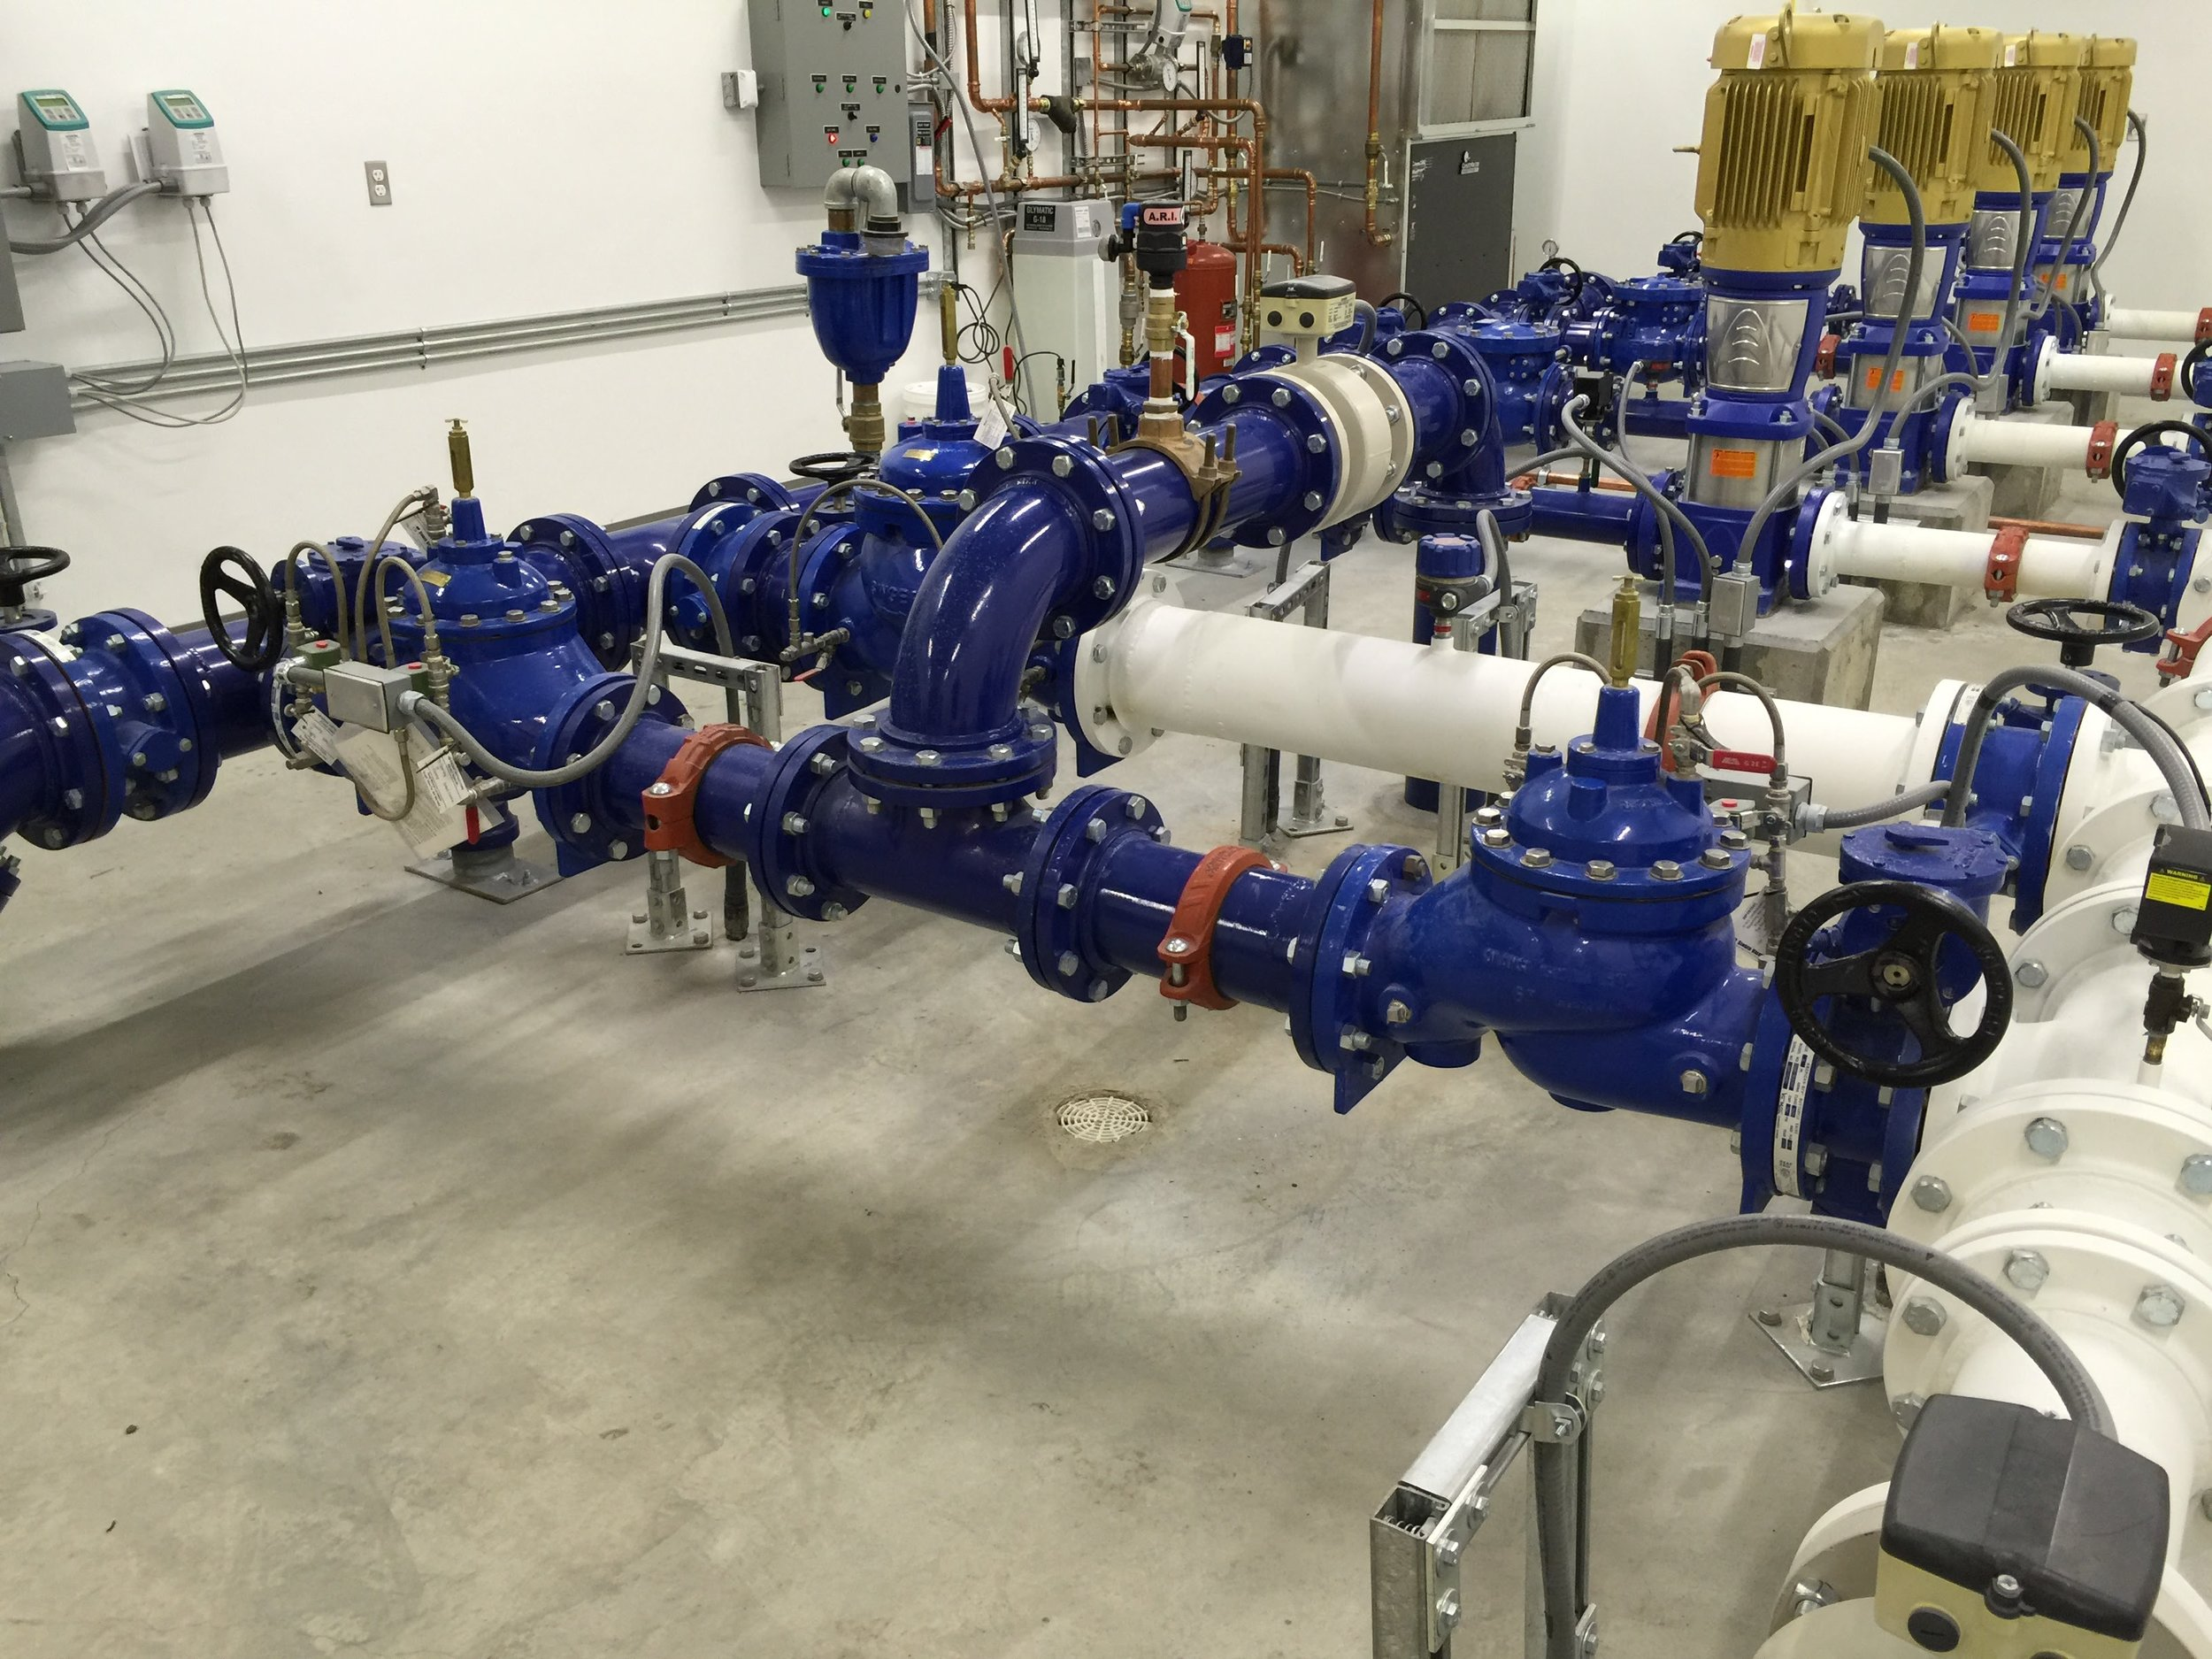 One of our new high efficiency pump stations serving middle valley of promontory. This design uses only about half of the power demand of a conventional pumping facility.